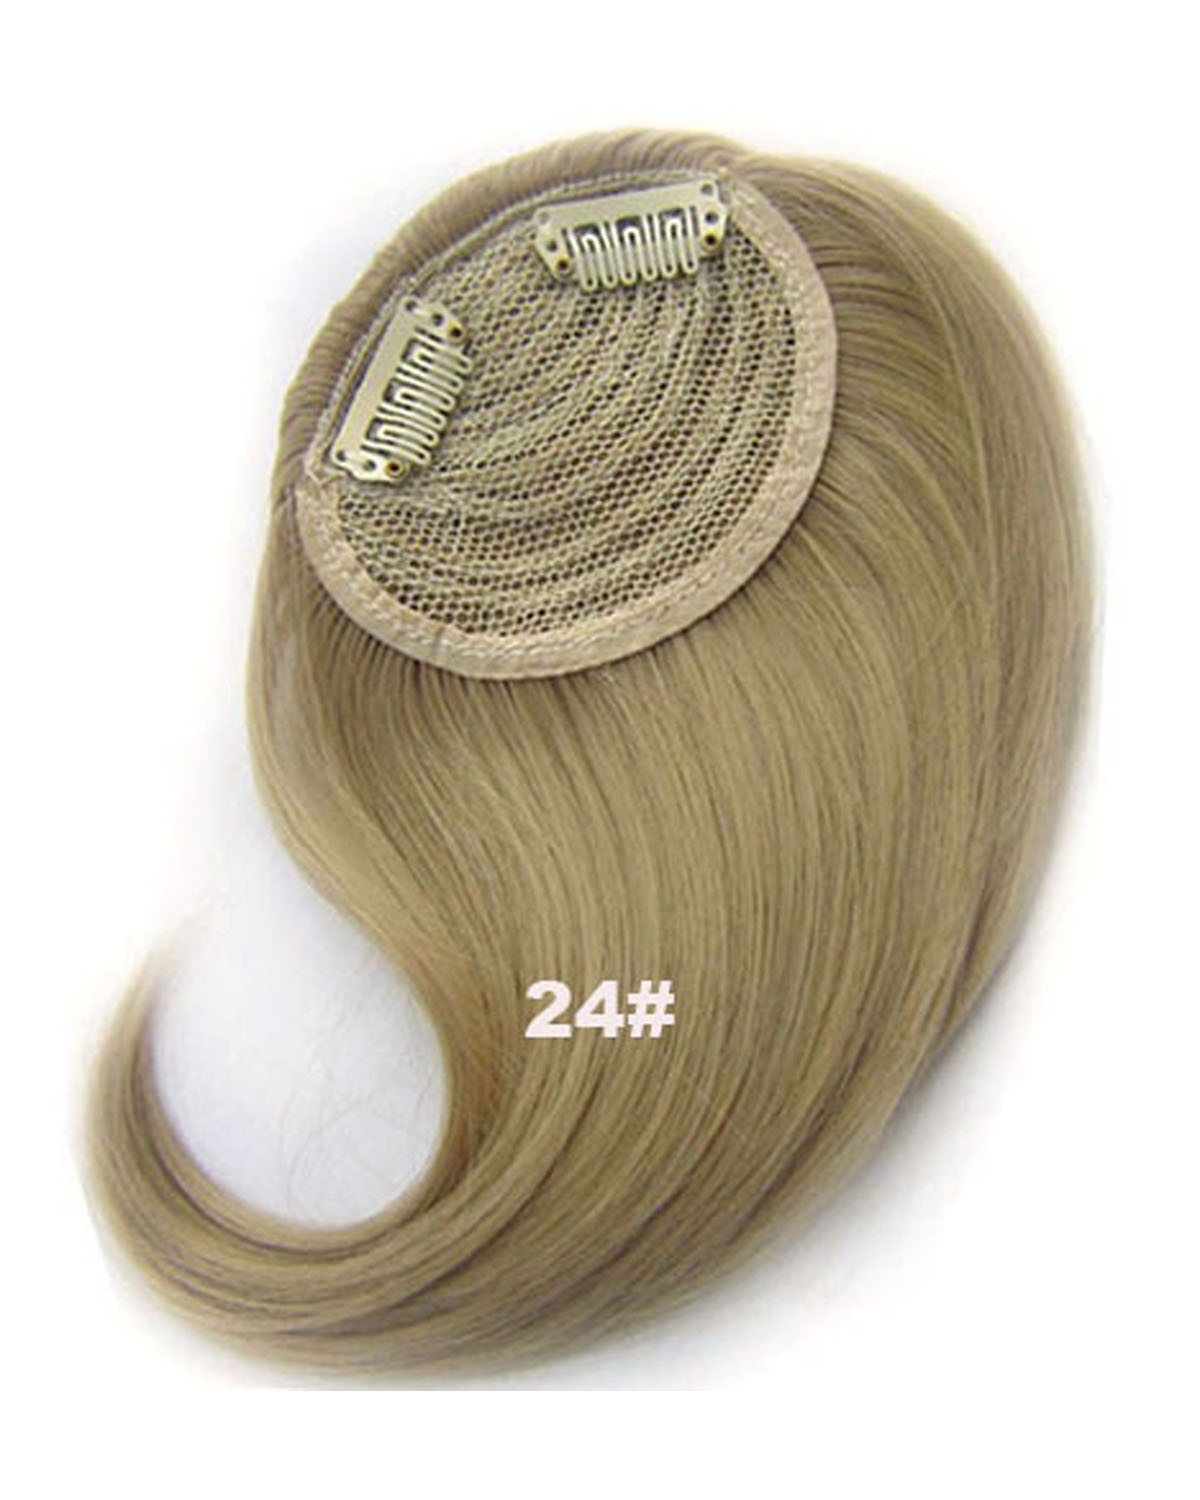 Girls Charismatic Straight Short Bangs Clip in Synthetic Hair Extension Fringe Bangs Hairpiece24#